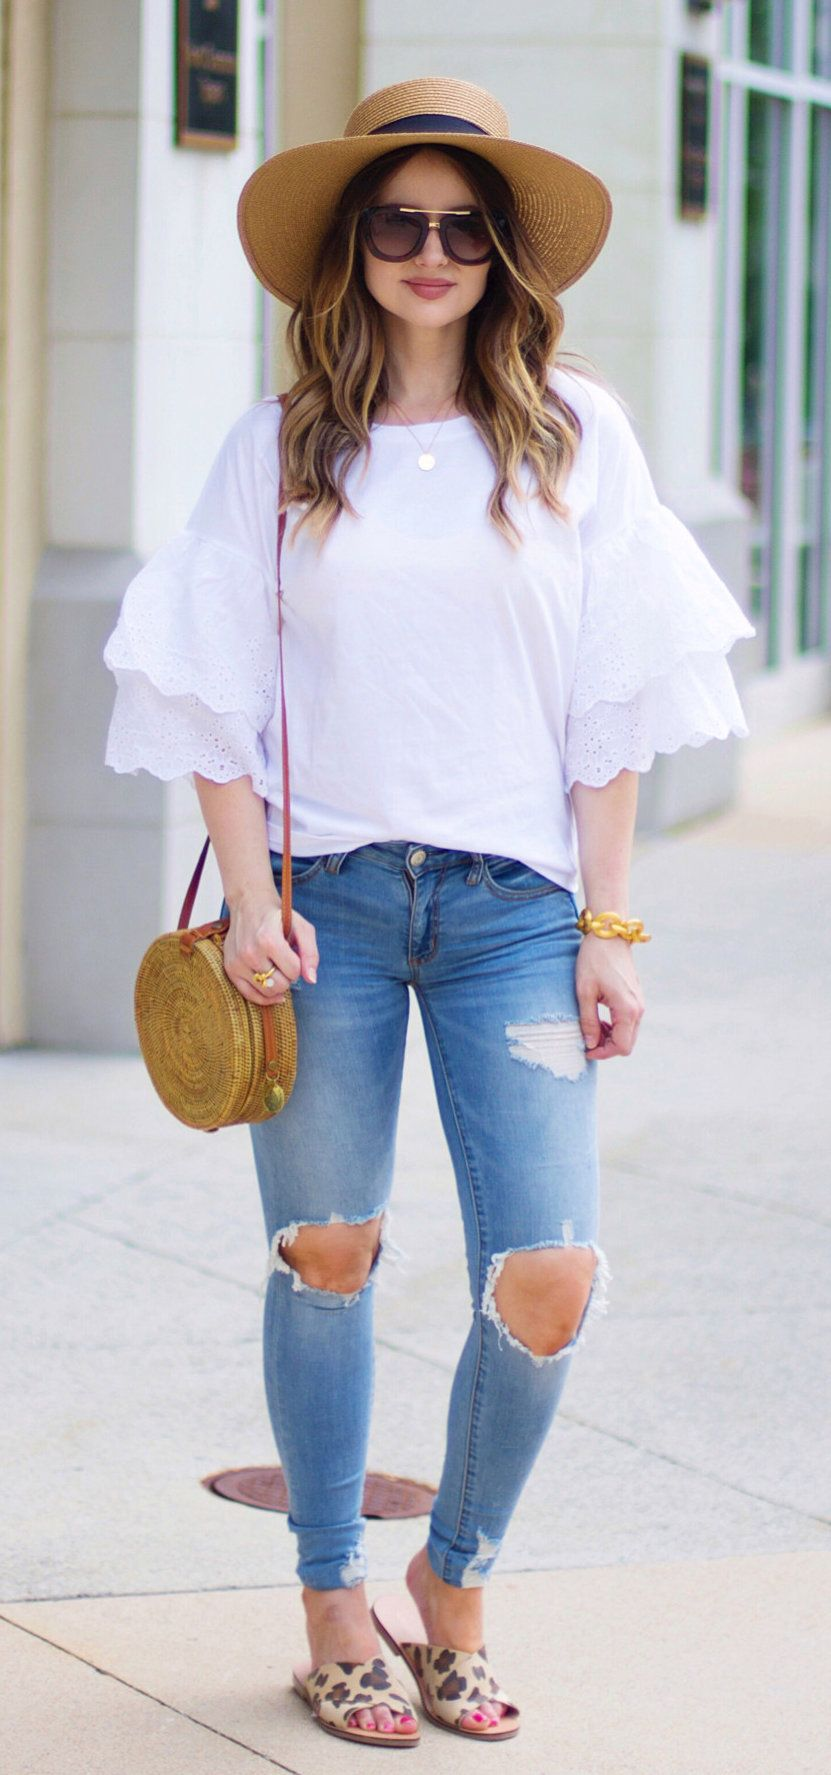 86c545298fb Flawless Summer Outfits You Should Already Own. summer outfits I m  Baaacckk! 🙌💗 I ve Been A Little MIA Lately After Having Baby  3